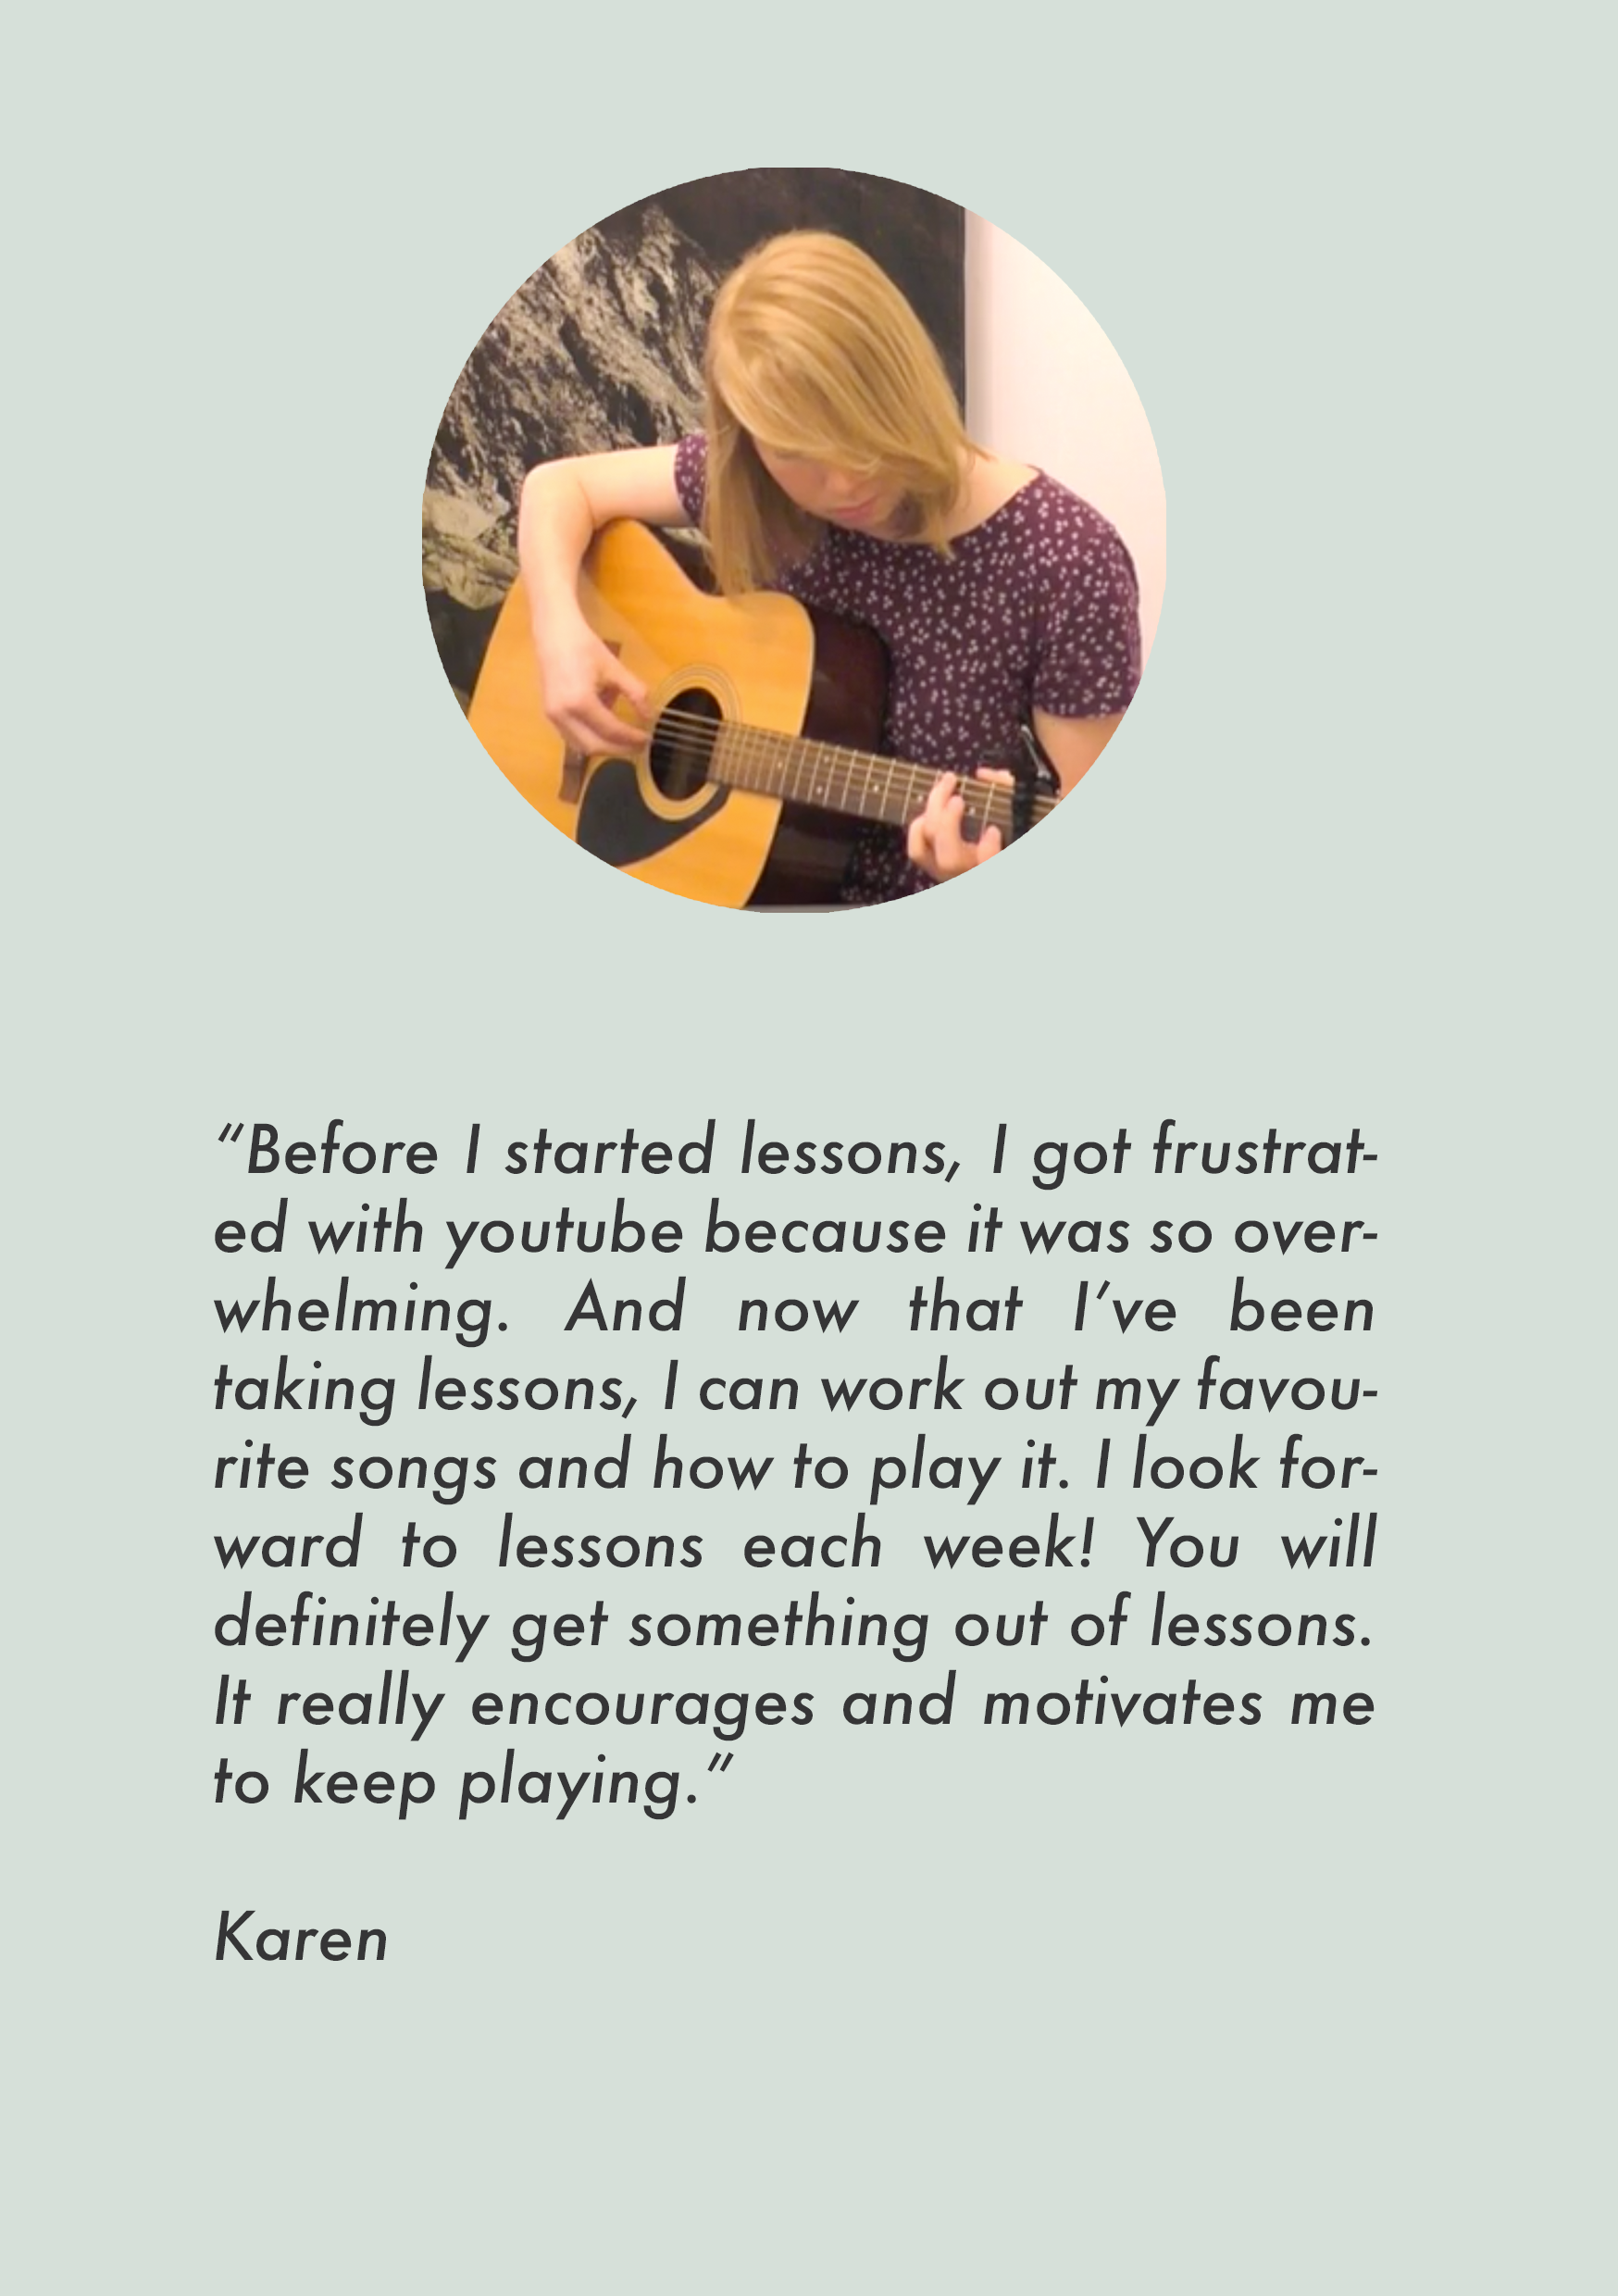 fun guitar lessons london